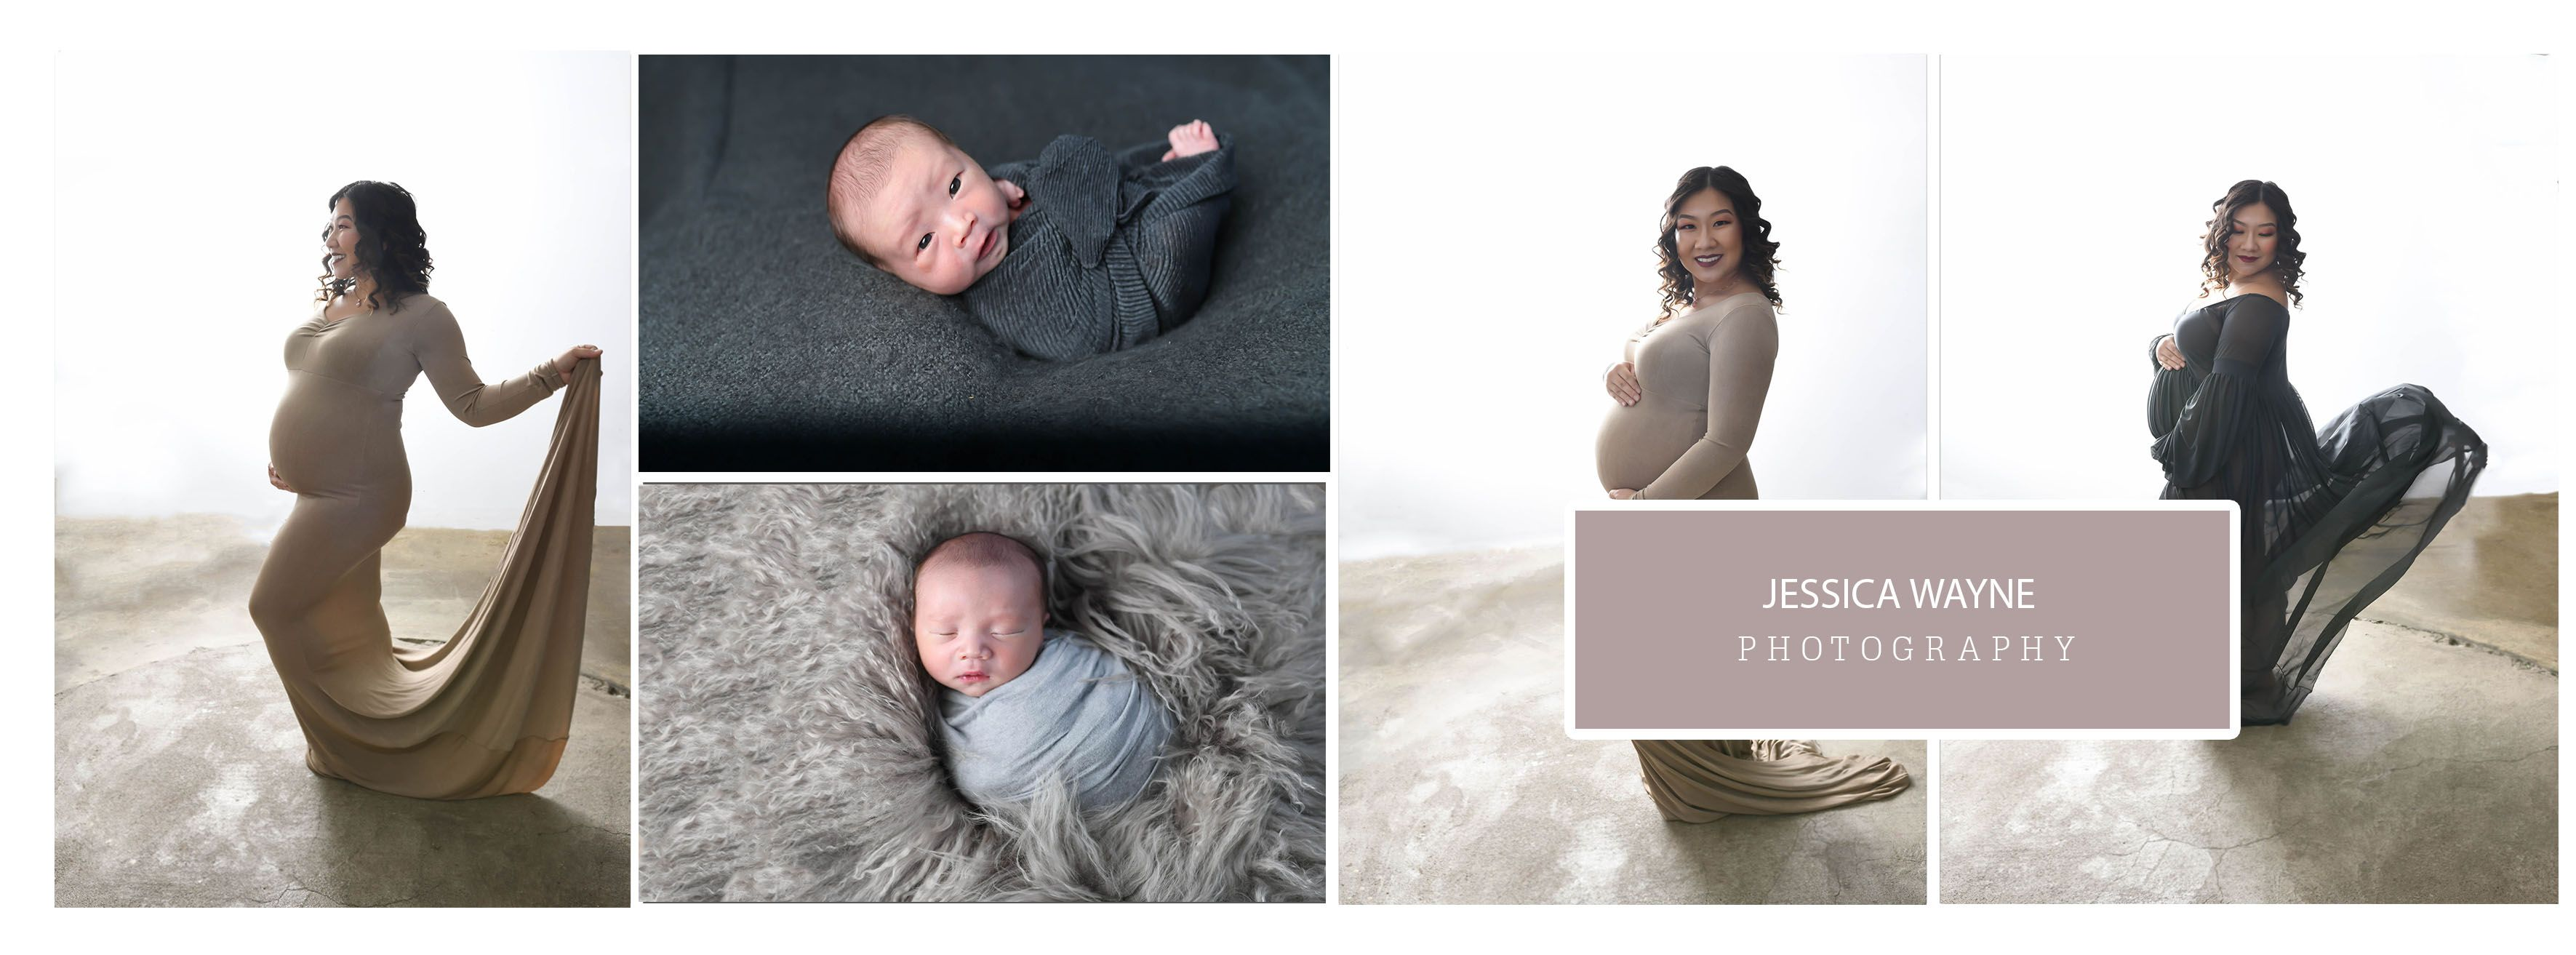 cac8bbb18edb5 Jessica Wayne Photography Specializes in maternity and Newborn Portraits.  Book your session now, rustic barn studio and artistic portraits to last a  ...